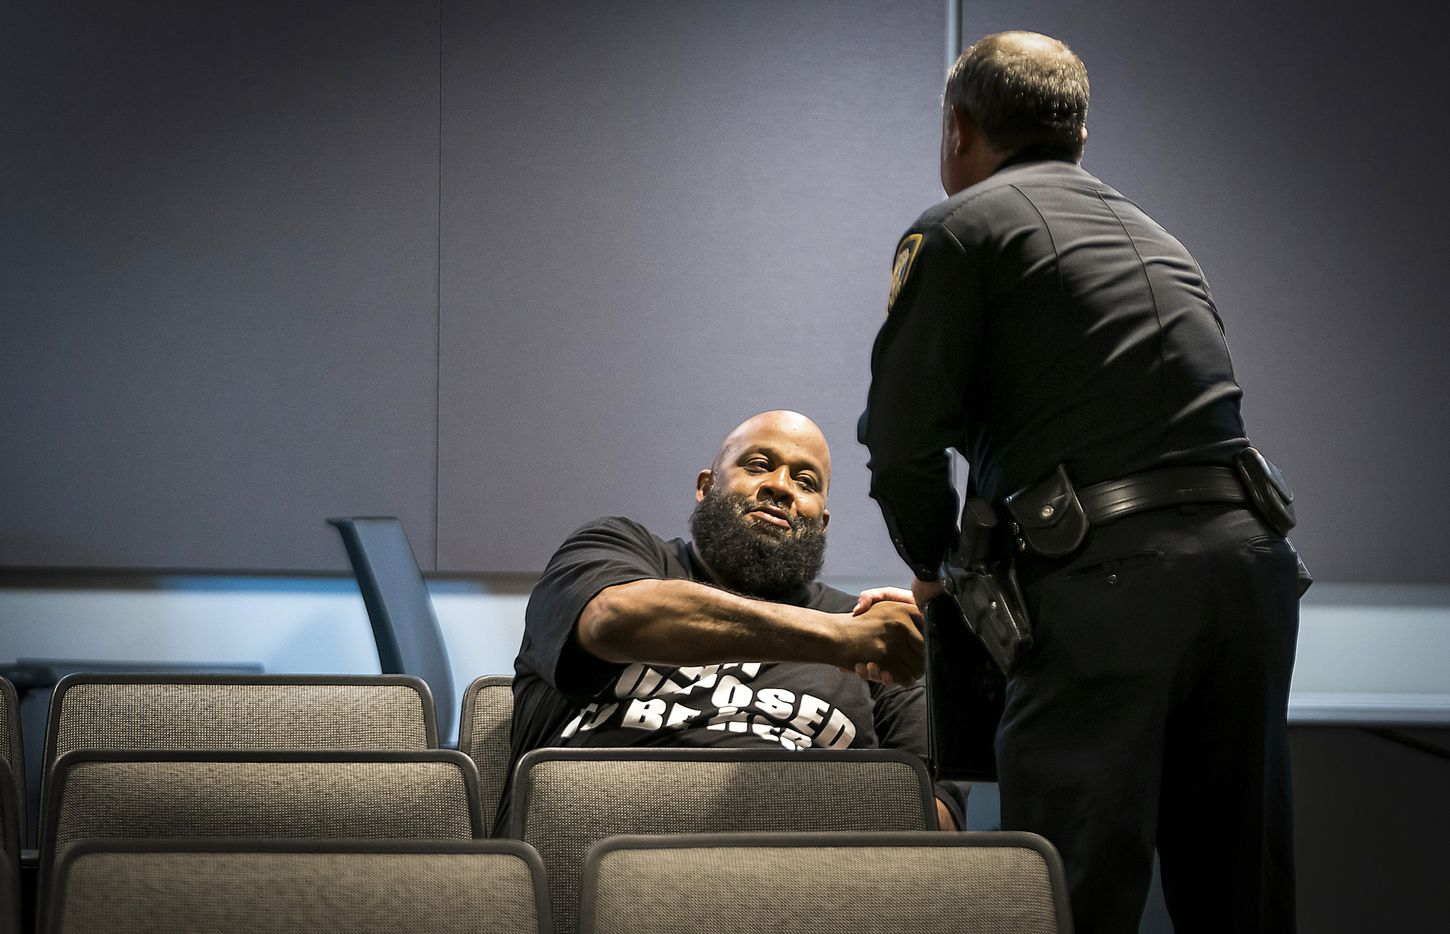 Fort Worth police Lt. Brandon OÕNeil shakes hands with Roger Foggle after addressing a news conference regarding the shooting of Atatiana Jefferson at the Bob Bolen Public Safety Complex on Sunday, Oct. 13, 2019, in Fort Worth.